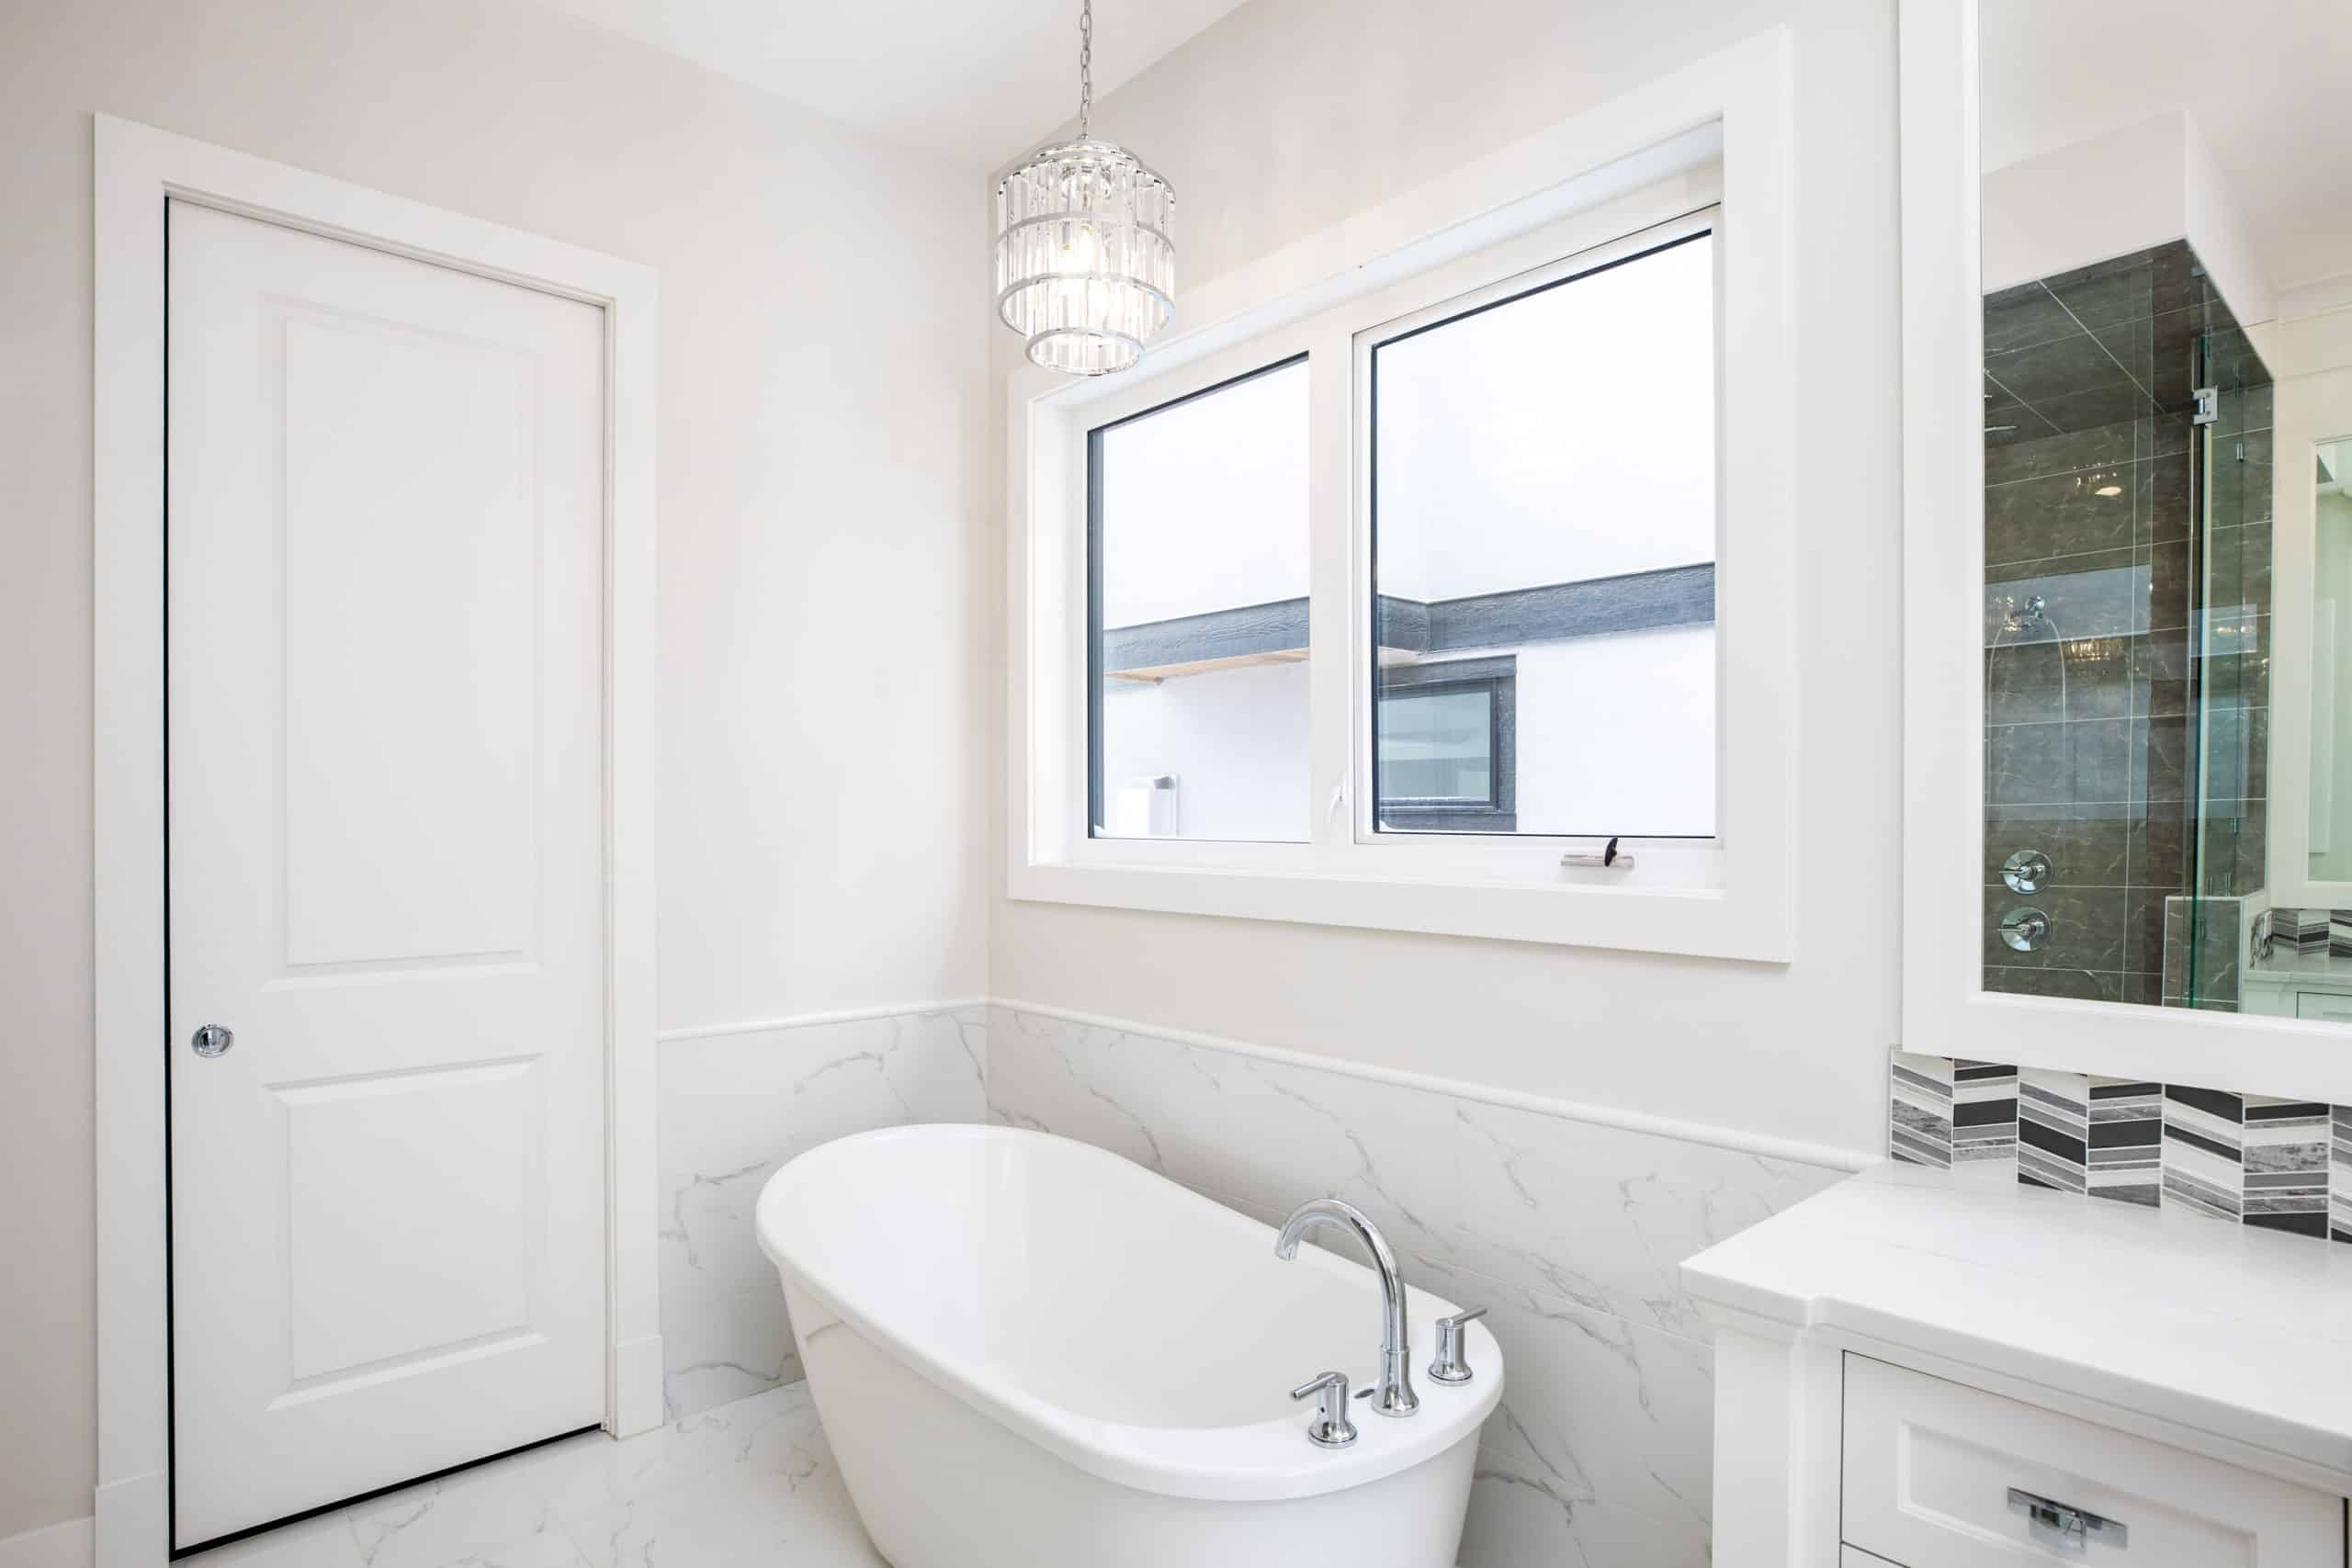 North Glenmore Park Modern Bungalow Ensuite